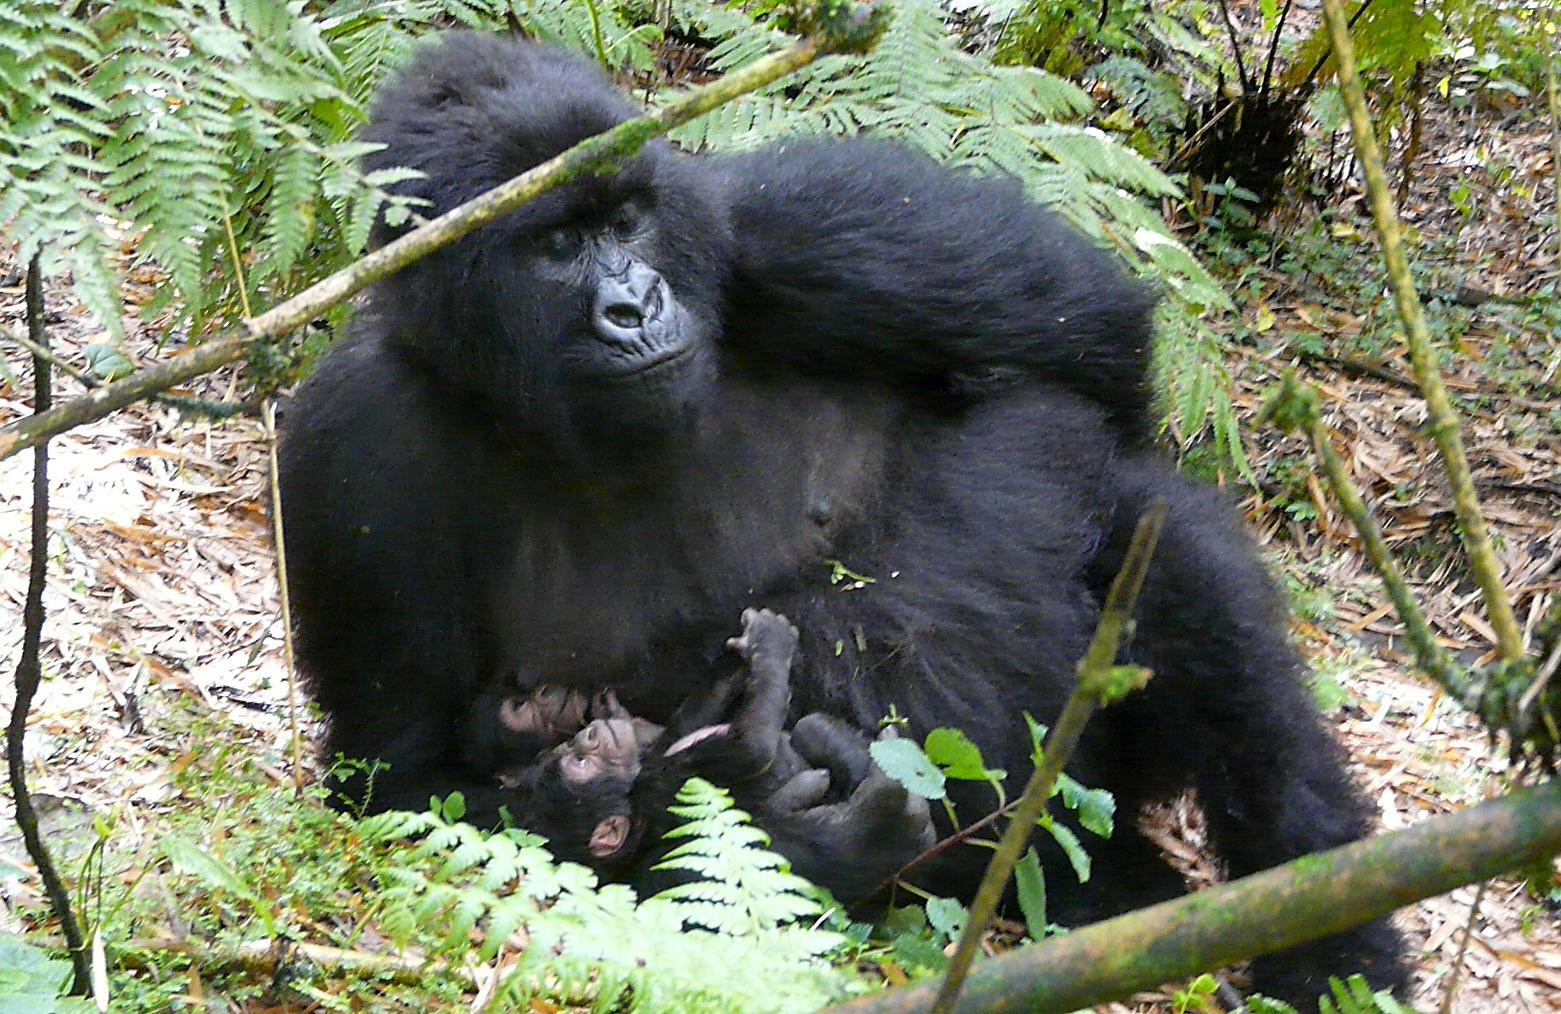 Foreign tourists involved in Prospective kidnapping in Virunga National Park